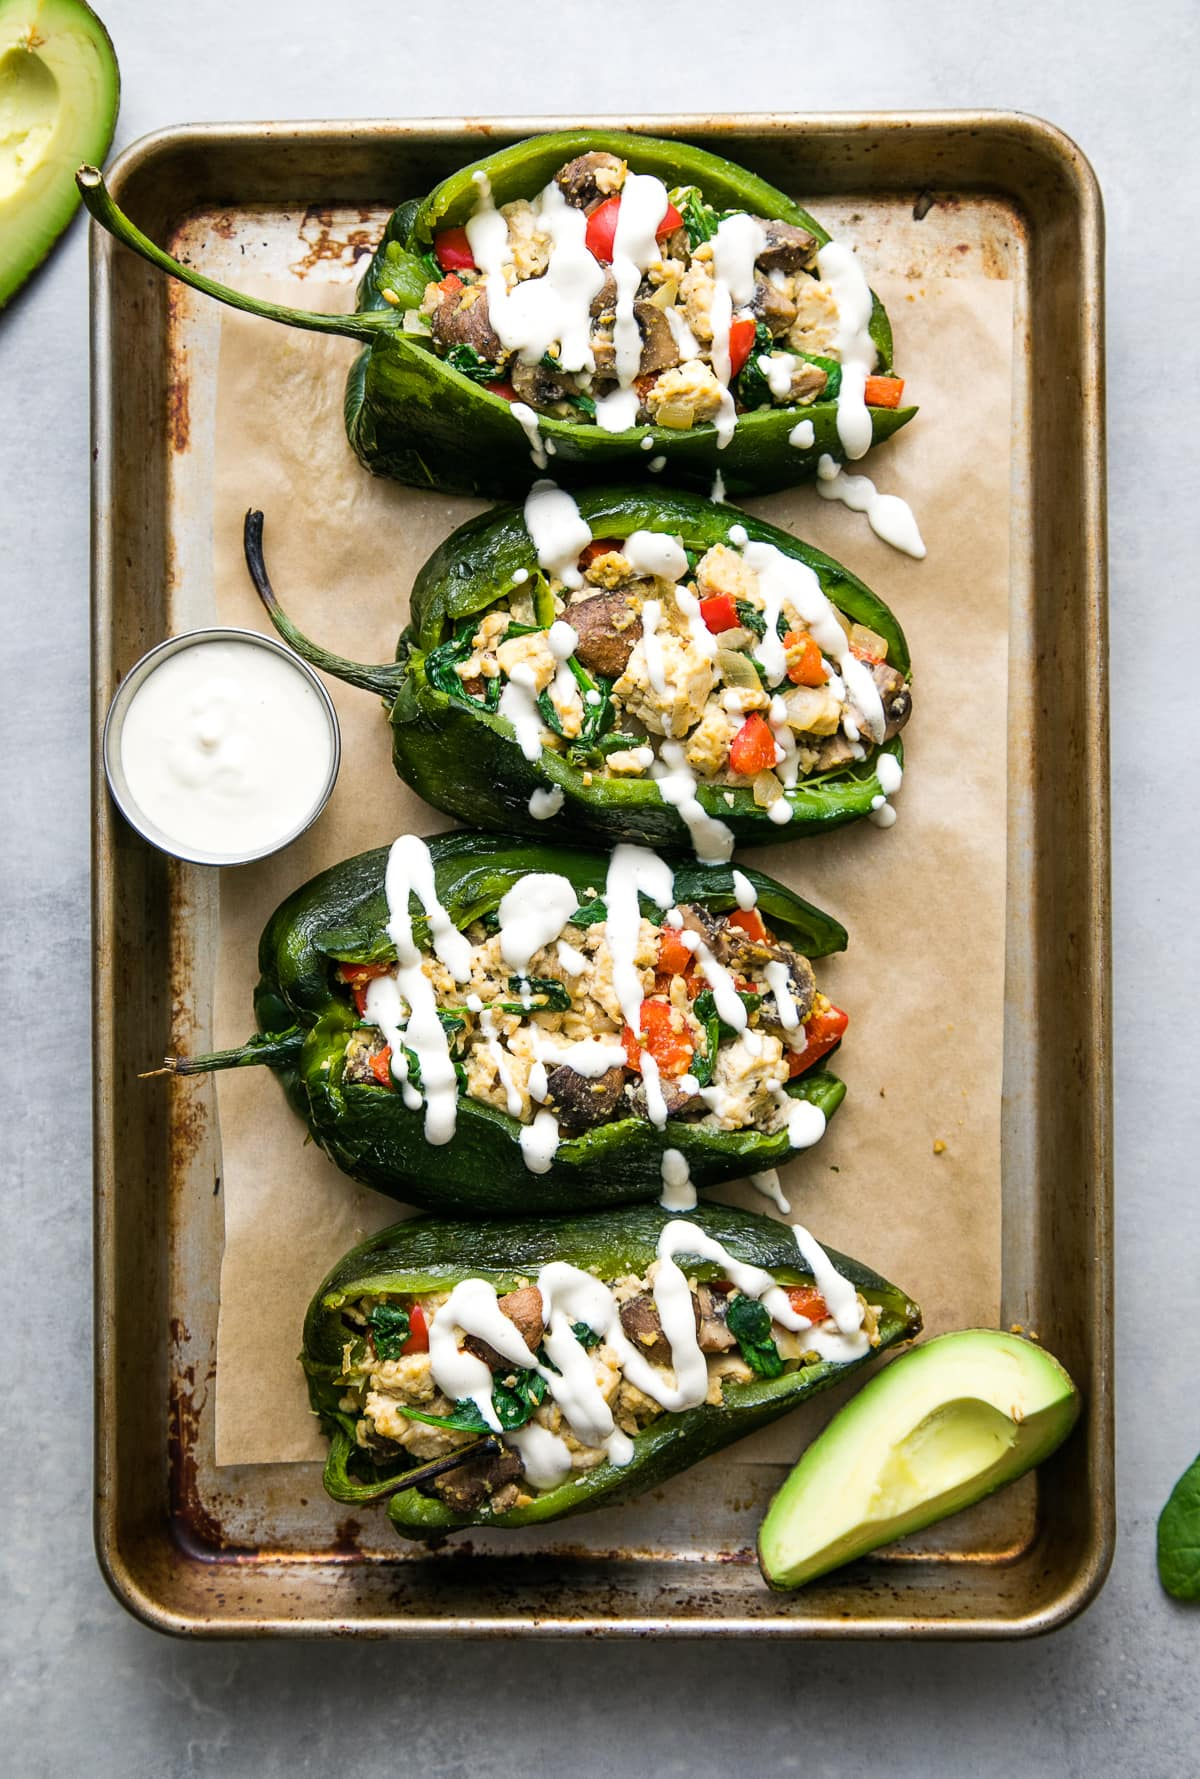 top down view of stuffed poblano peppers with tofu scramble and drizzled with cashew cream on a baking sheet.